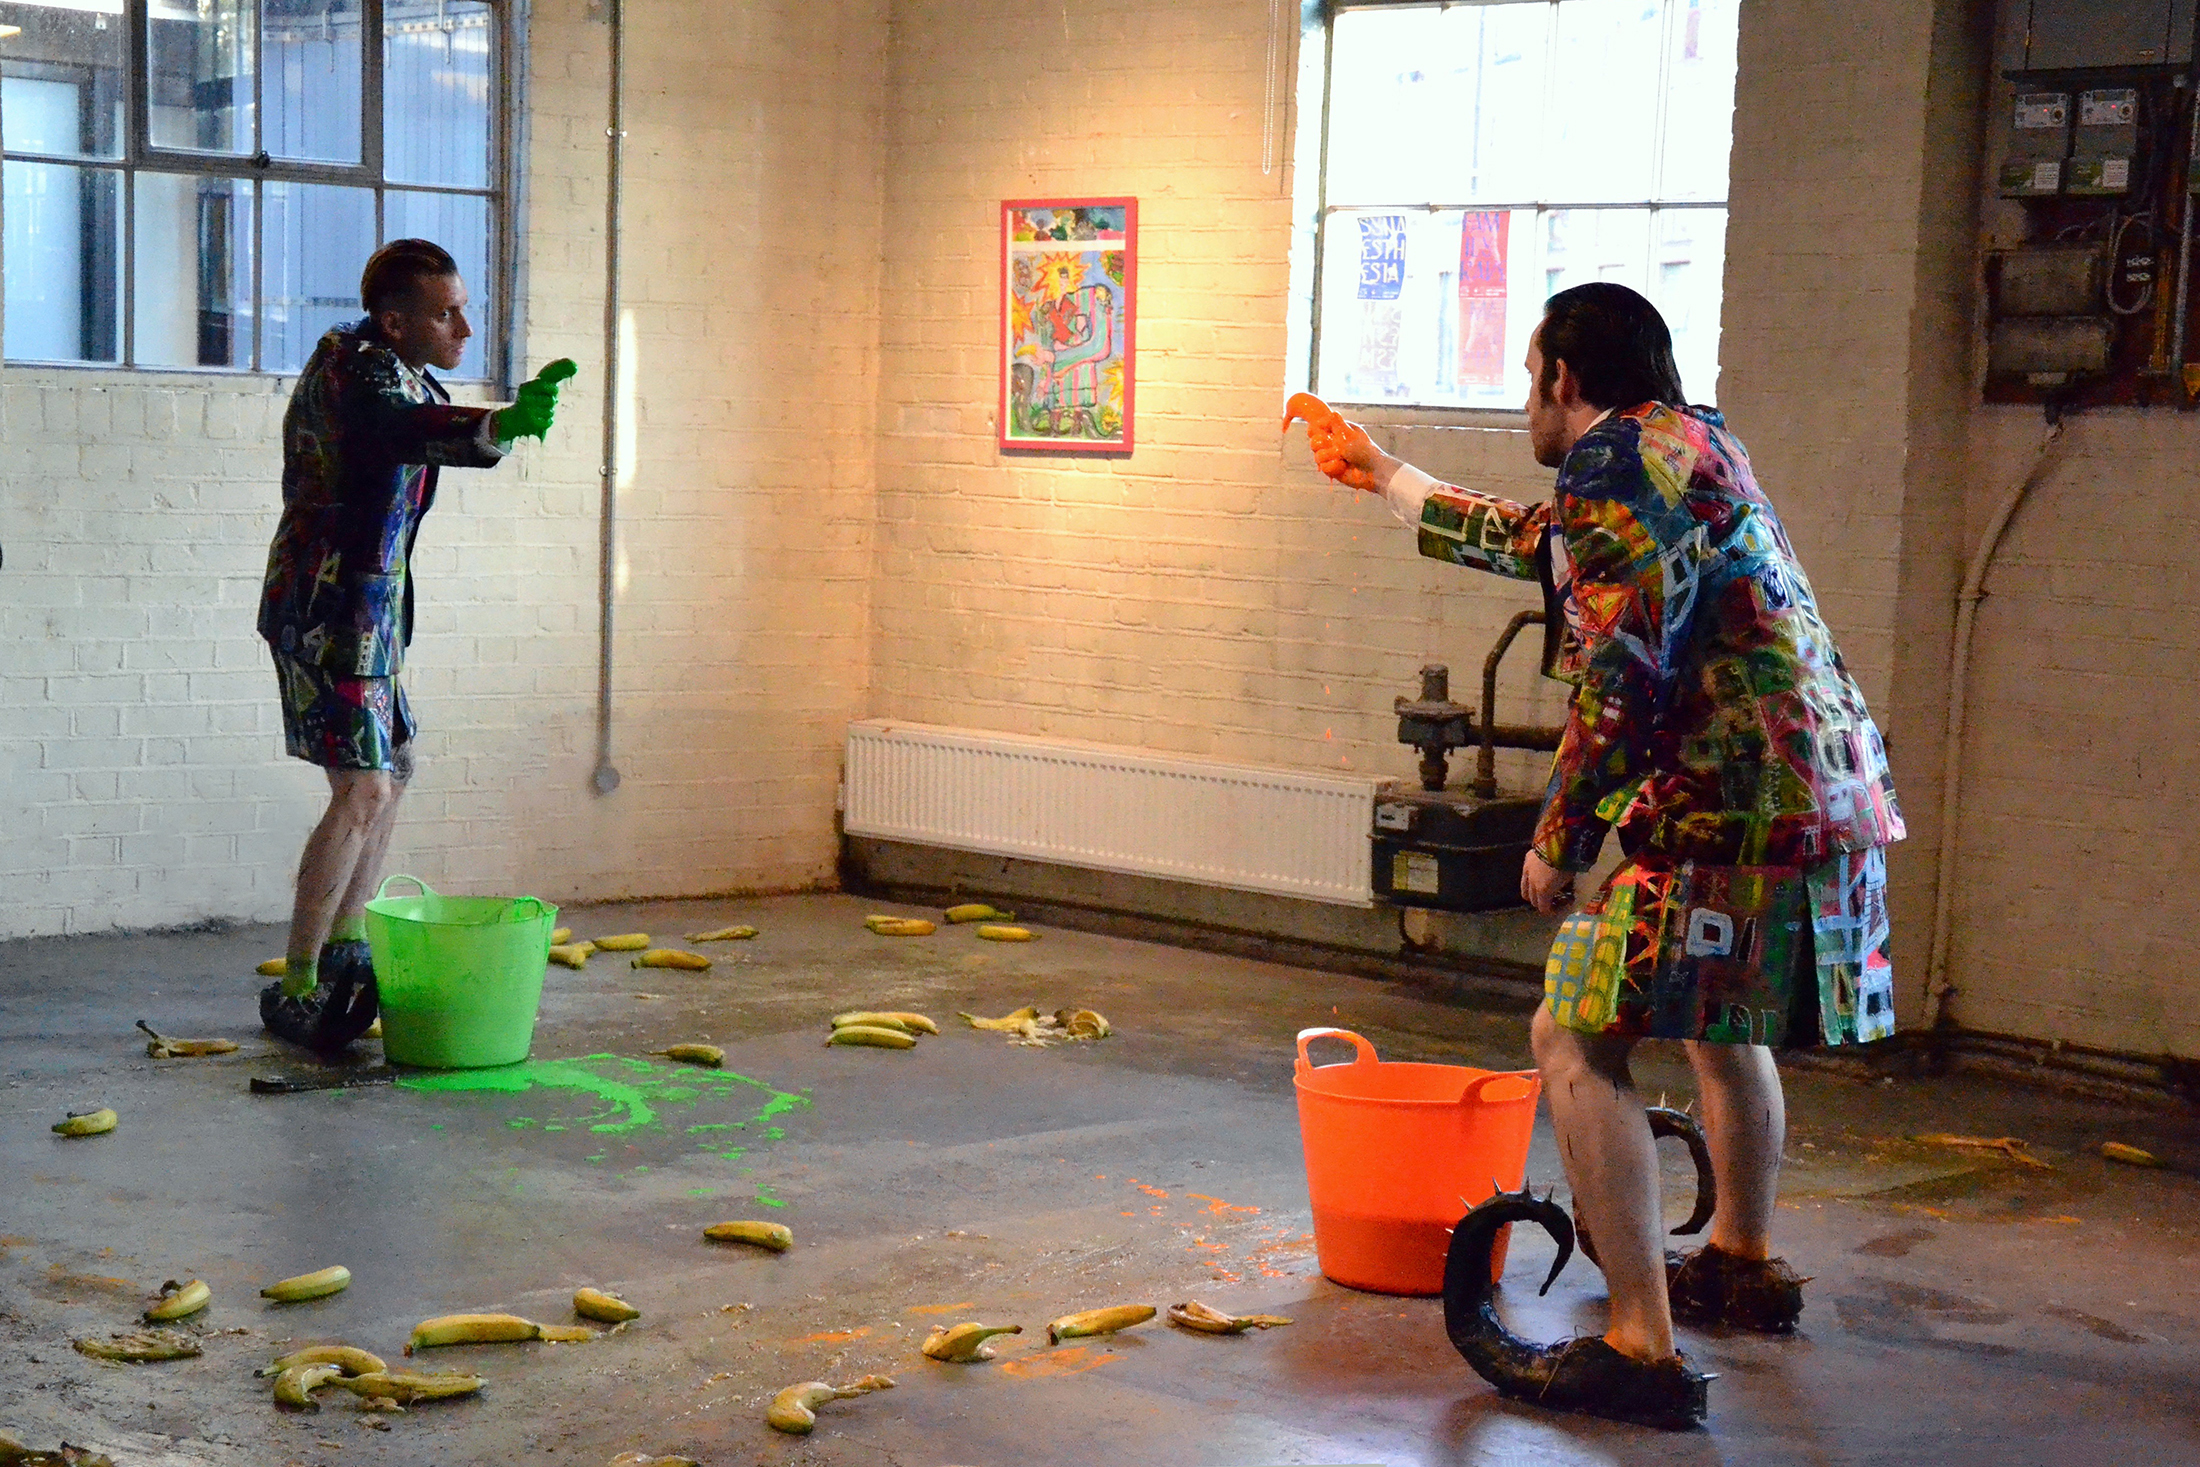 Two men pointing two bananas against each other as if they were guns. Image reference Andy Warhol Elvis. Bananas on the floor, fluorescent paint spilled on the ground.